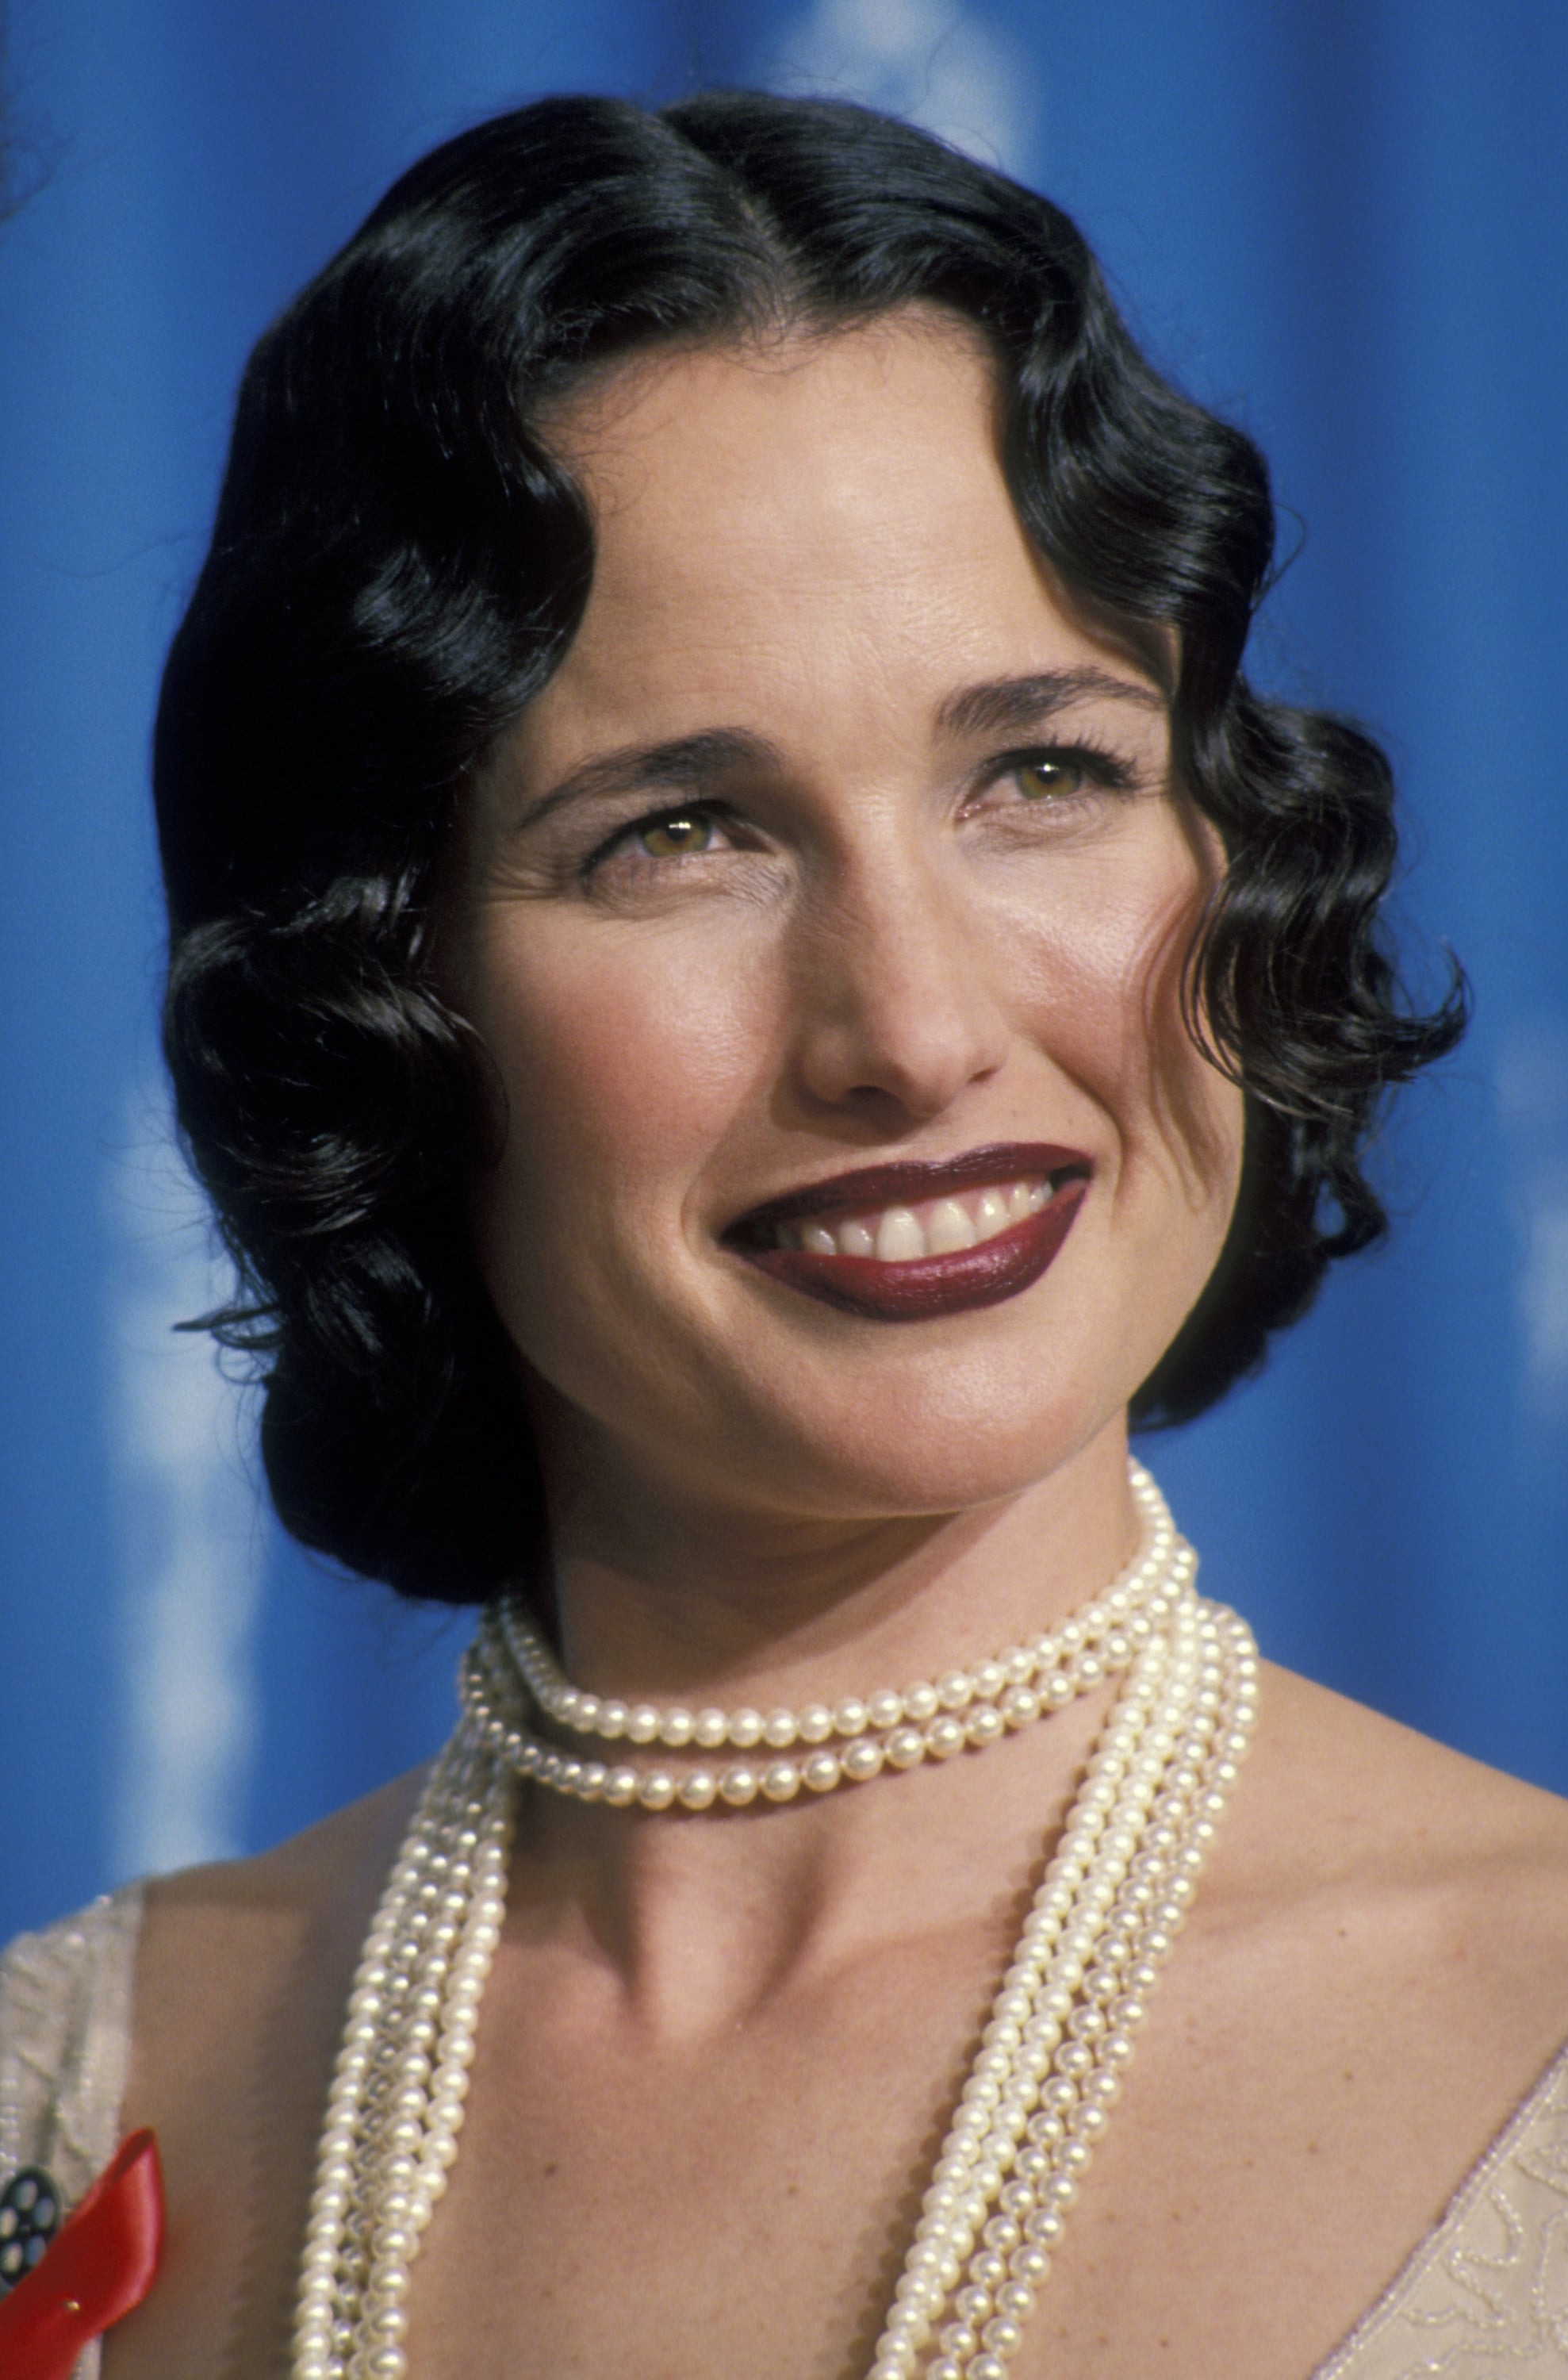 Andie Macdowell Foto andie macdowell, 1993 | the most iconic oscars beauty